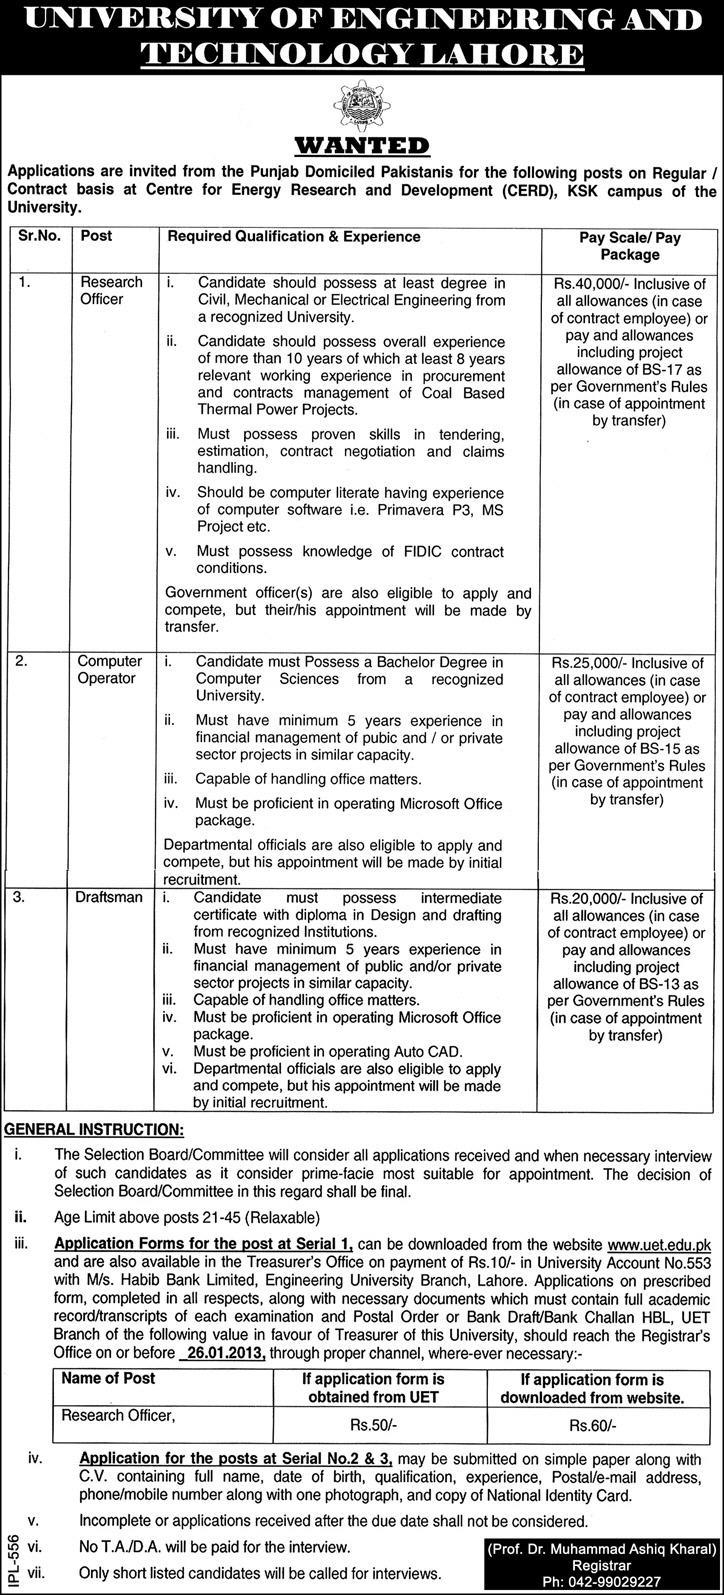 university of engineering technology jobs Jobs in University of Engineering & Technology Lahore